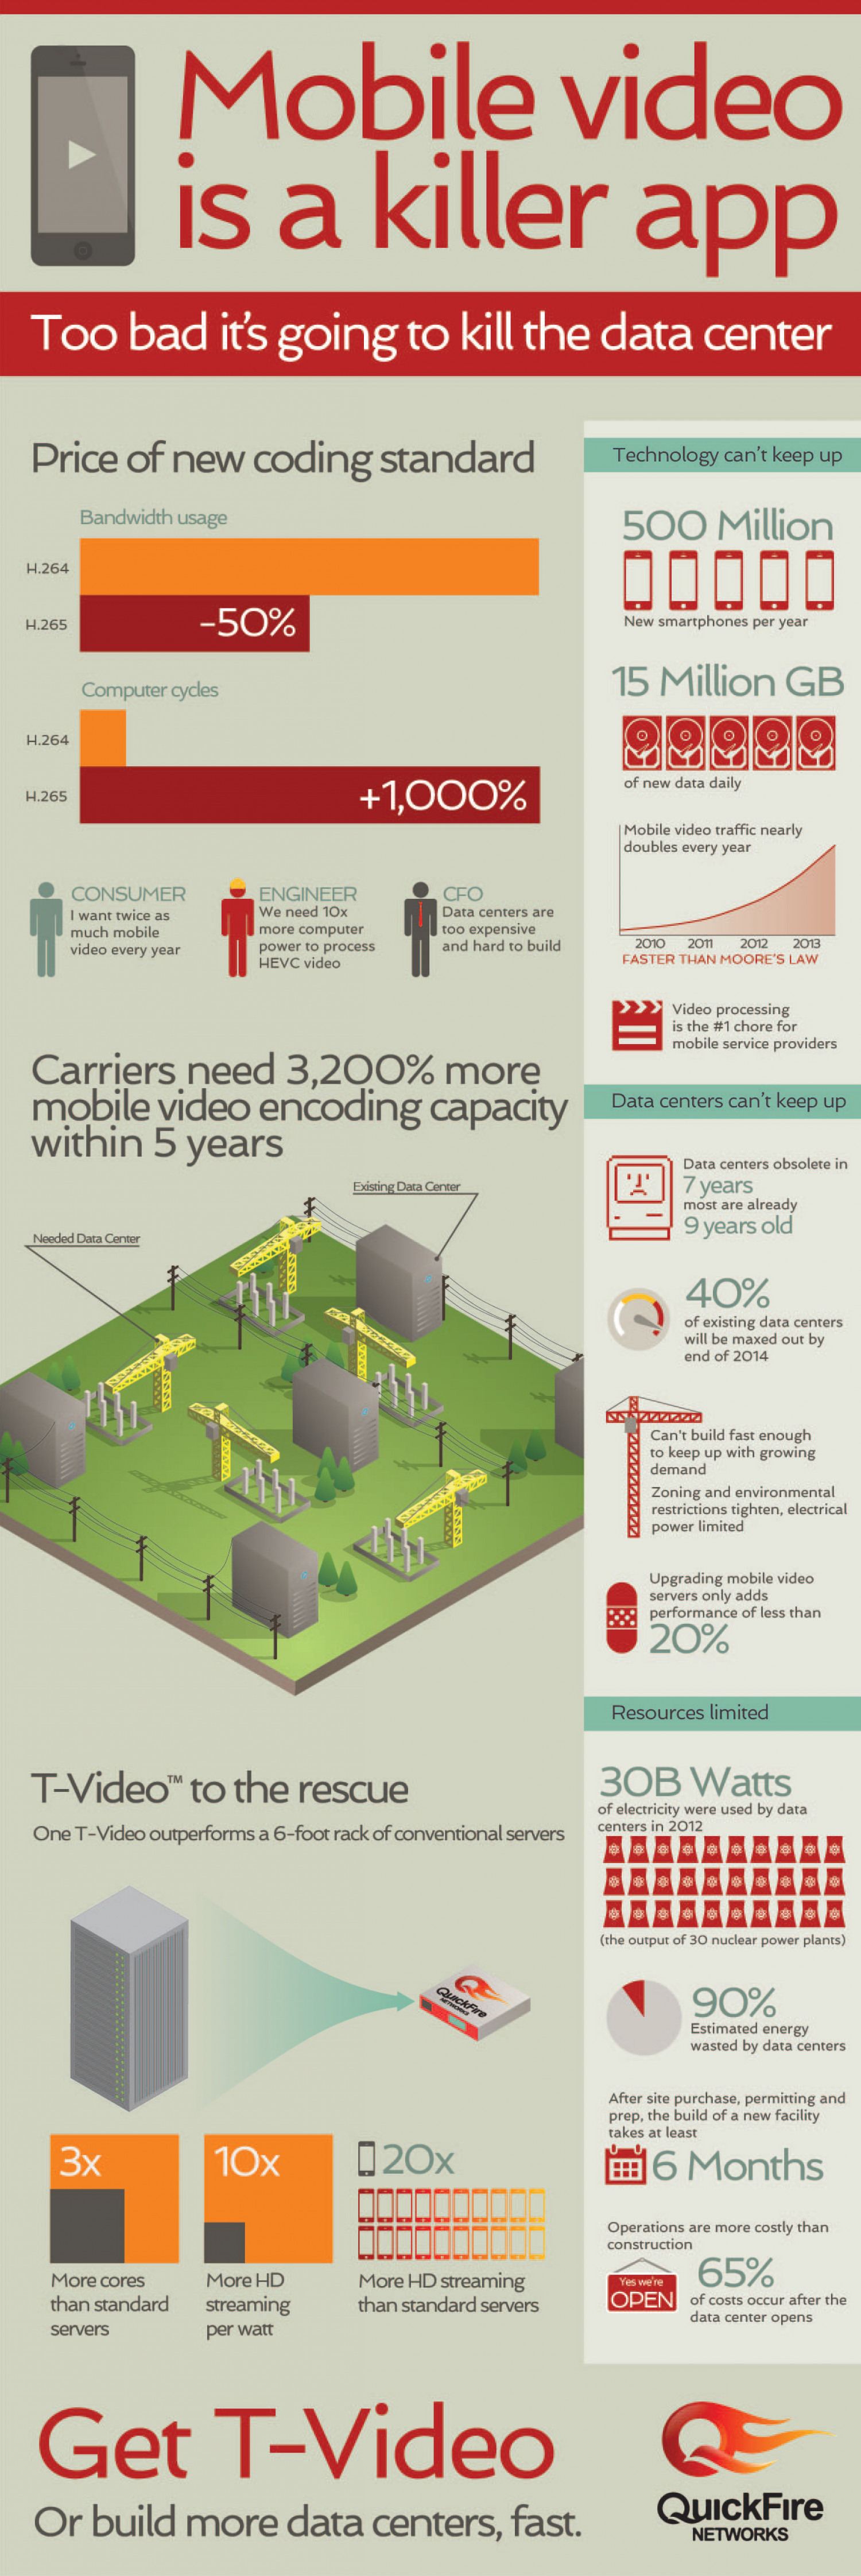 Mobile Video is Killing Data Centers Infographic